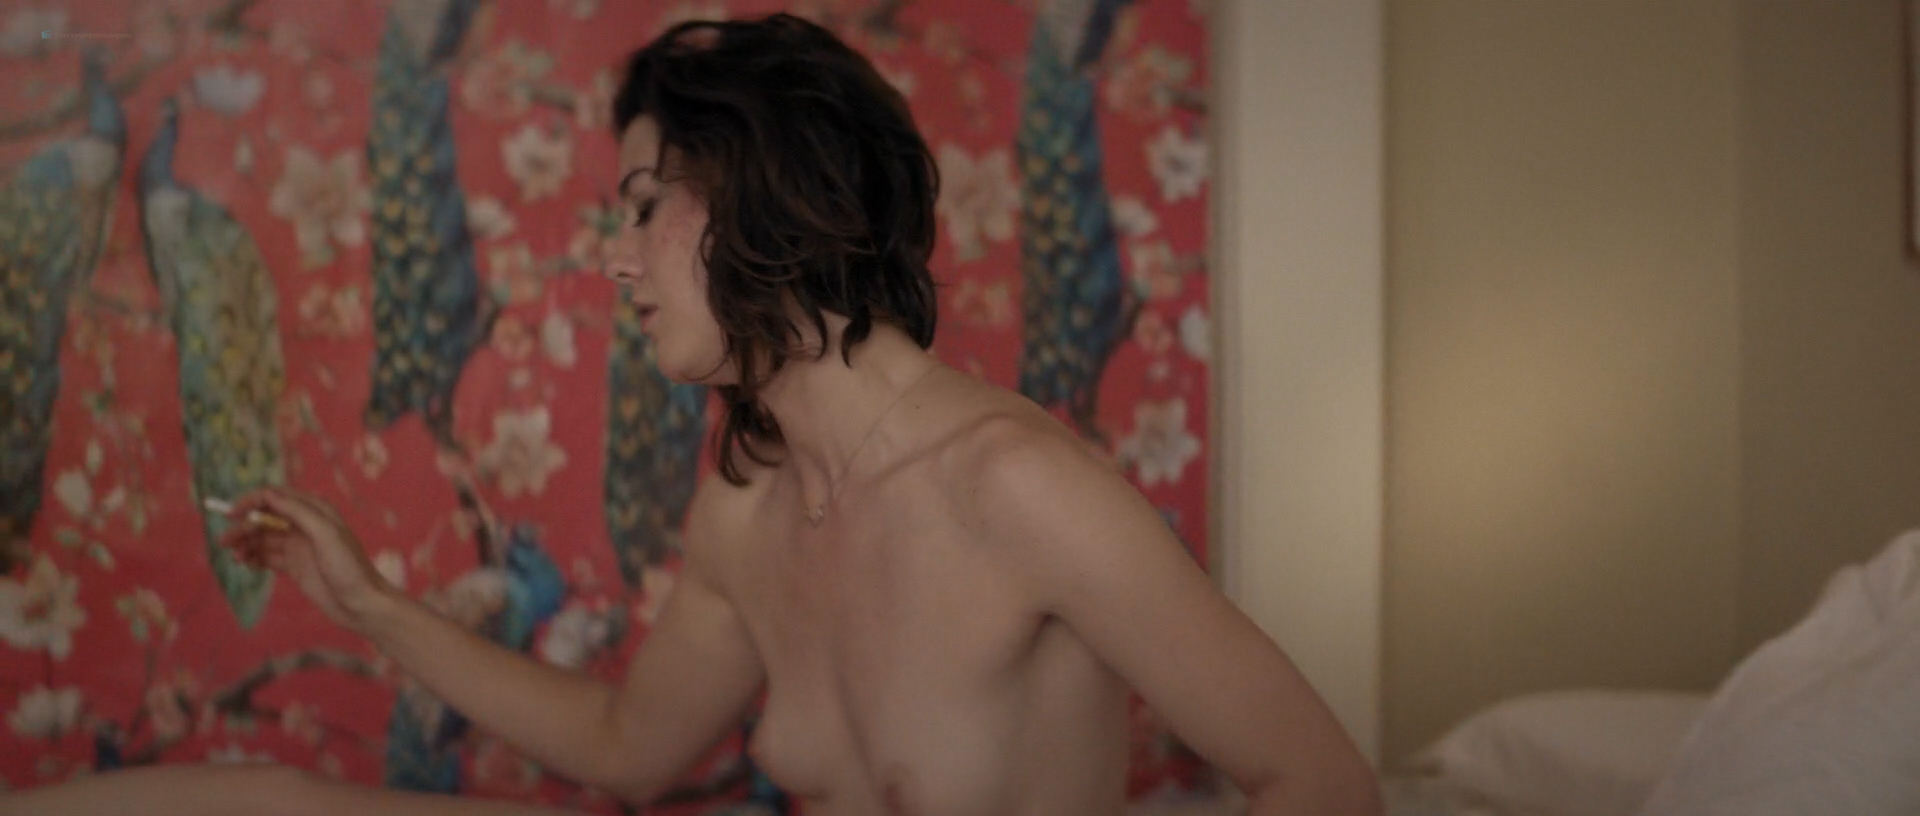 Mary Elizabeth Winstead Nude Topless And Hot - All About Nina 2018 Hd 1080P-9404